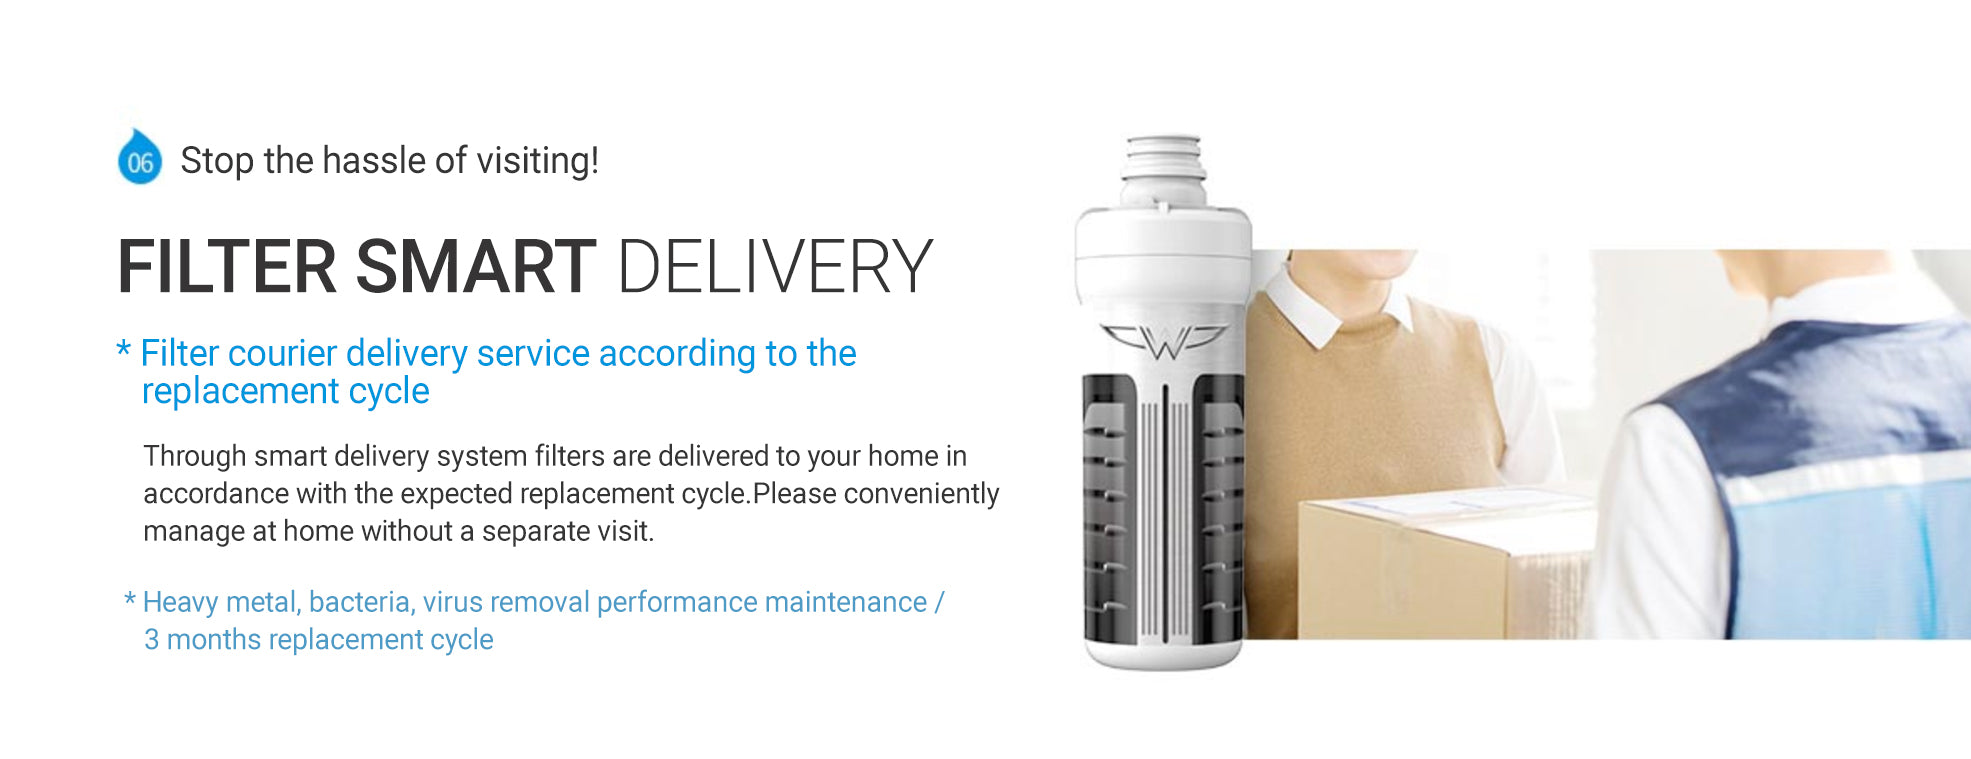 Filter Smart Delivery, Filter Courier Delivery Service According to The Replacement Cycle